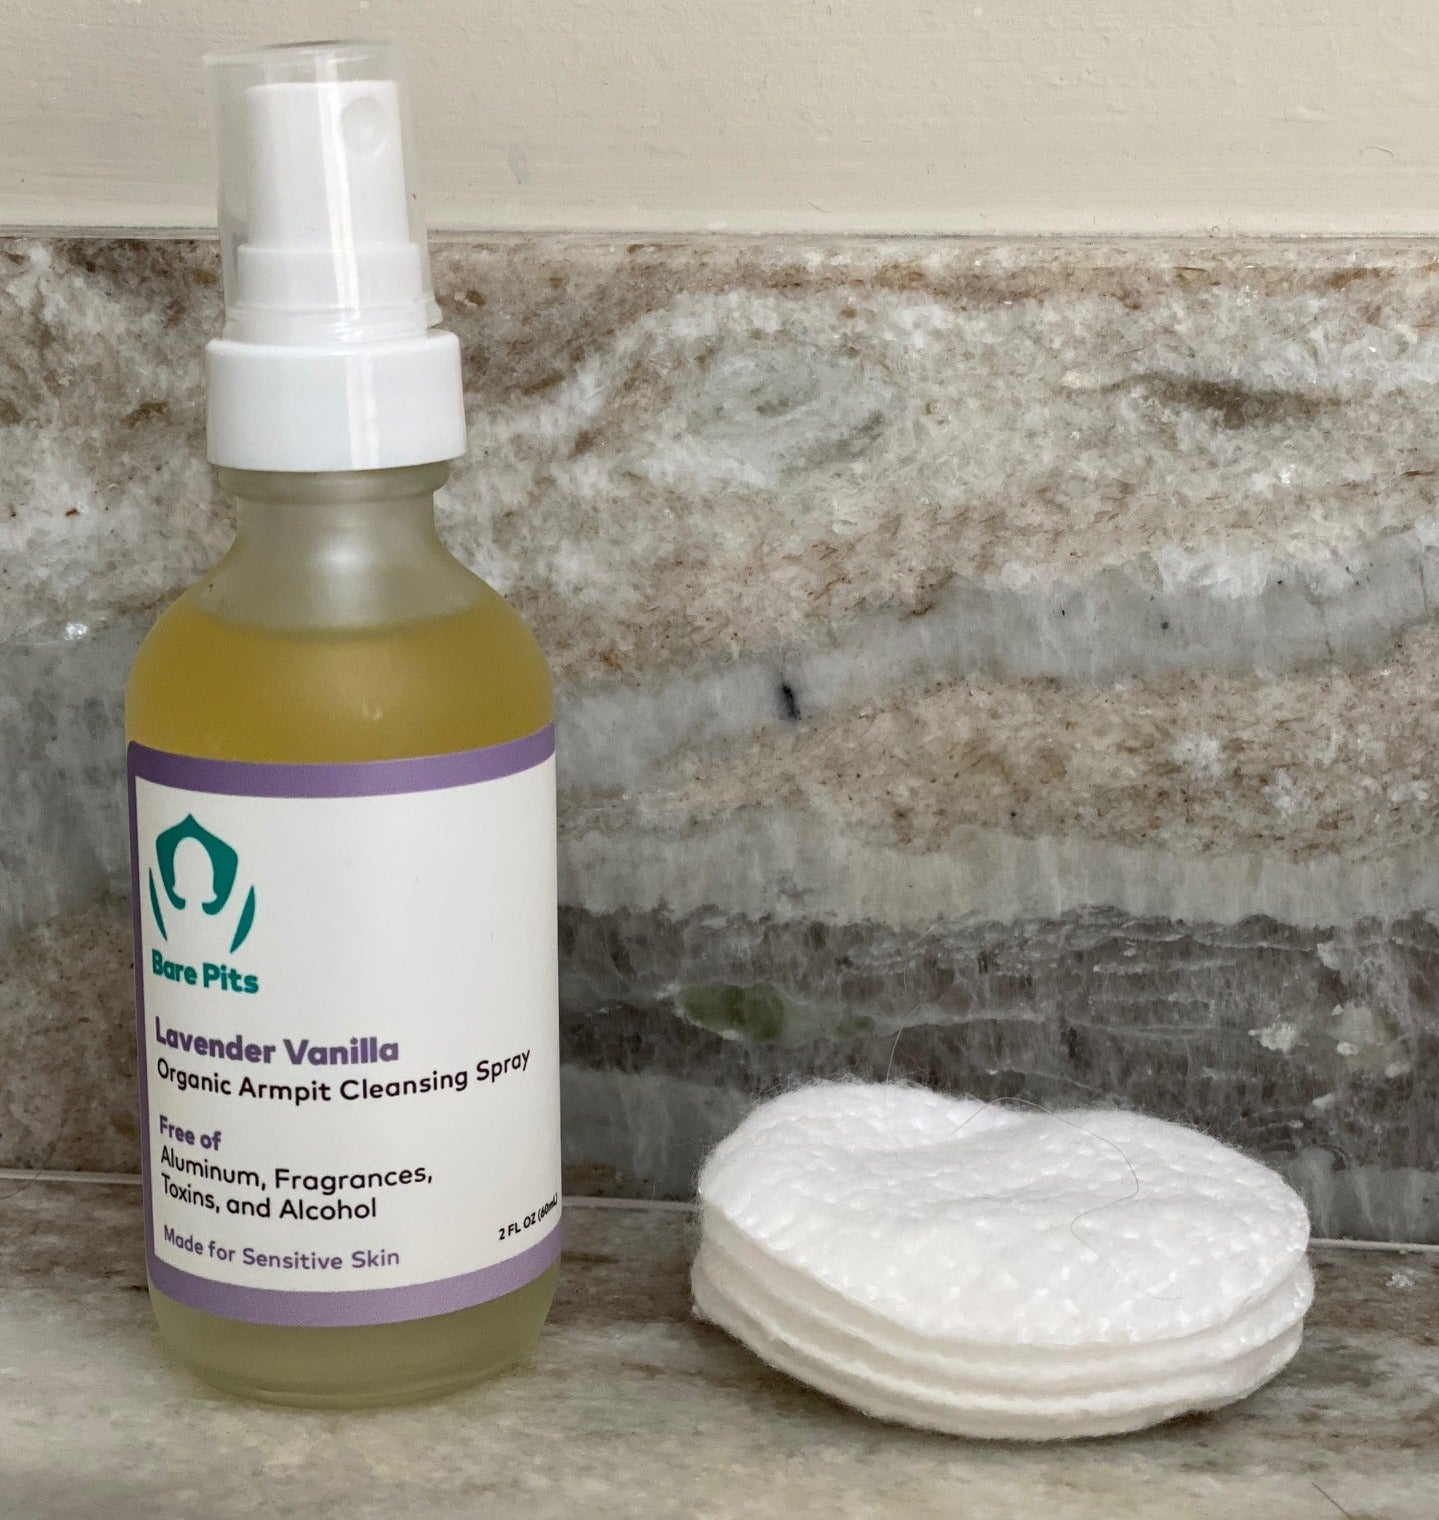 Bare Pits Organic Armpit Cleansing Spray